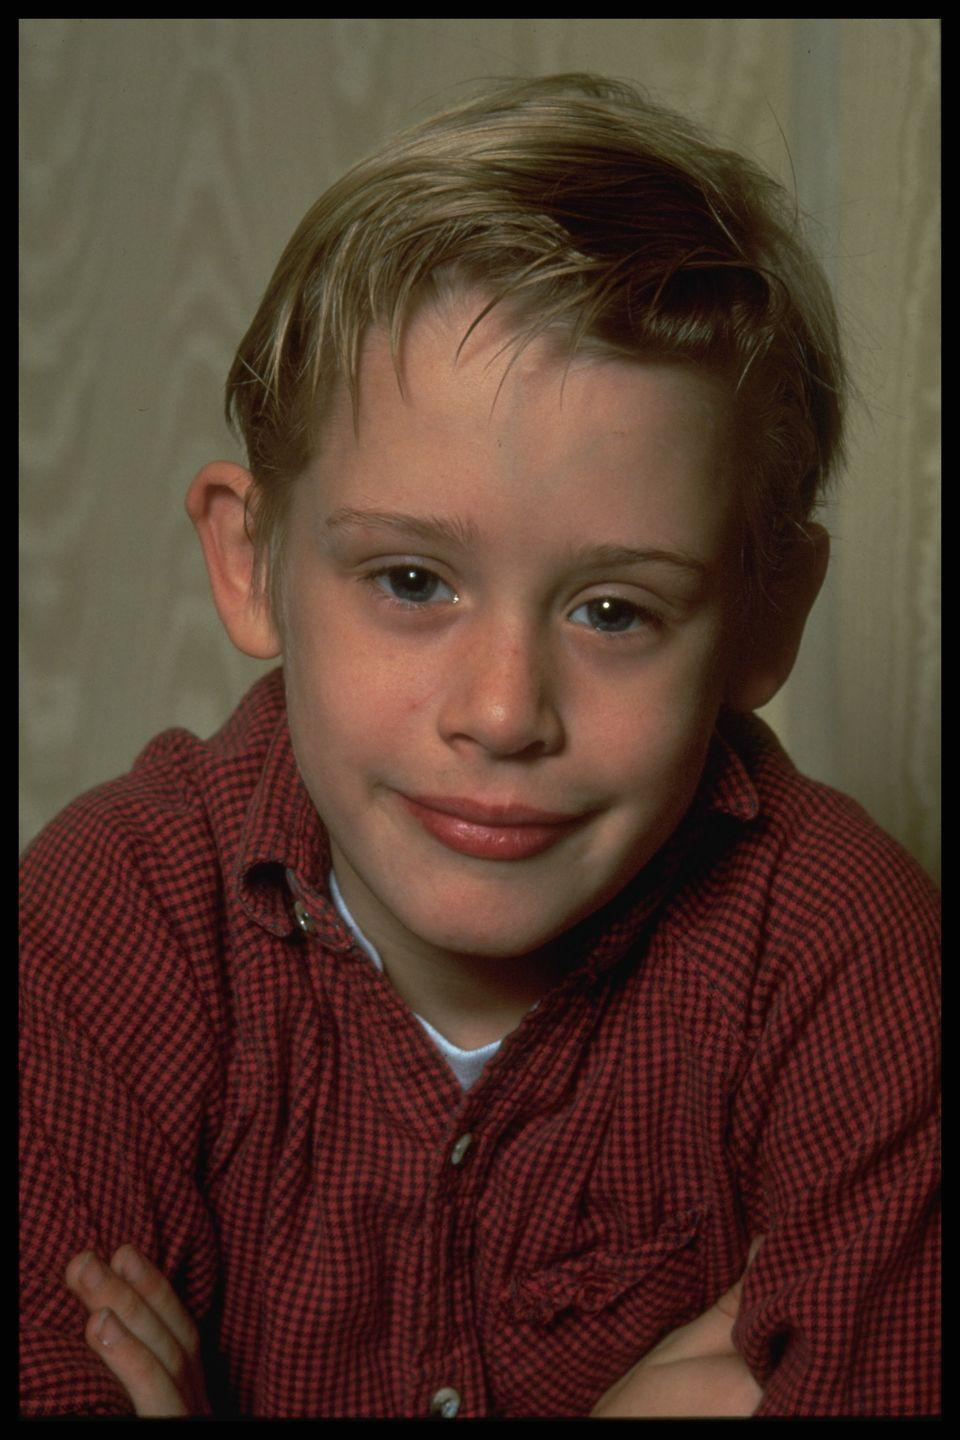 """<p>Macaulay started his acting in off-Broadway shows at the age of 4, winning a part in the movie <em><a href=""""https://www.amazon.com/dp/B001BR5NK8?tag=syn-yahoo-20&ascsubtag=%5Bartid%7C10050.g.24736857%5Bsrc%7Cyahoo-us"""" rel=""""nofollow noopener"""" target=""""_blank"""" data-ylk=""""slk:Uncle Buck"""" class=""""link rapid-noclick-resp"""">Uncle Buck </a></em>a few years later. His next role in the movie, <em><a href=""""https://www.amazon.com/dp/B0031QNMKK?tag=syn-yahoo-20&ascsubtag=%5Bartid%7C10050.g.24736857%5Bsrc%7Cyahoo-us"""" rel=""""nofollow noopener"""" target=""""_blank"""" data-ylk=""""slk:Home Alone"""" class=""""link rapid-noclick-resp"""">Home Alone</a></em>, showcased his baby-faced innocence and comedic timing, and he played in several more popular movies including <em>My Girl </em>and <em>Home Alone 2 </em>before leaving acting<em>. </em></p>"""